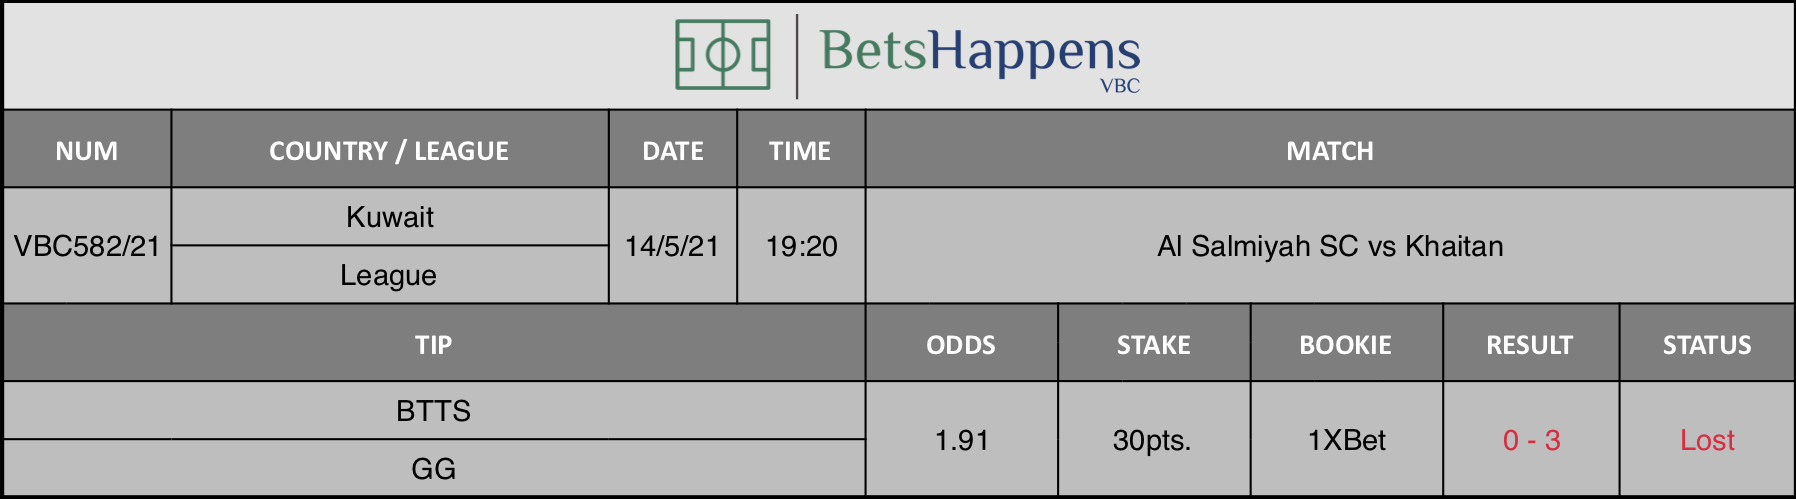 Results of our tip for the Al Salmiyah SC vs Khaitan match where BTTS F/T  GG is recommended.